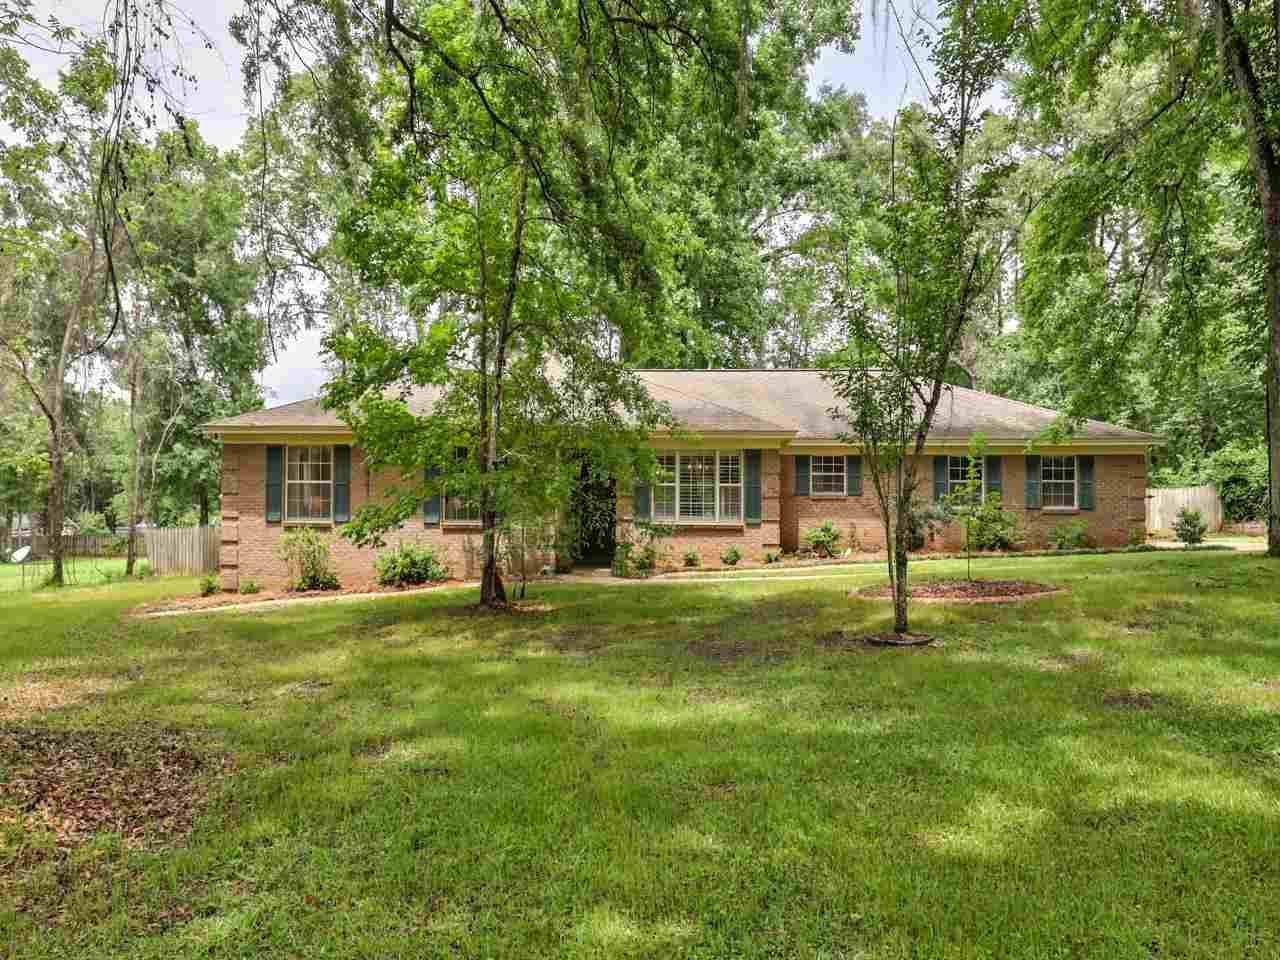 6712 Buck Lake Road, Tallahassee, FL 32317 - MLS#: 332342